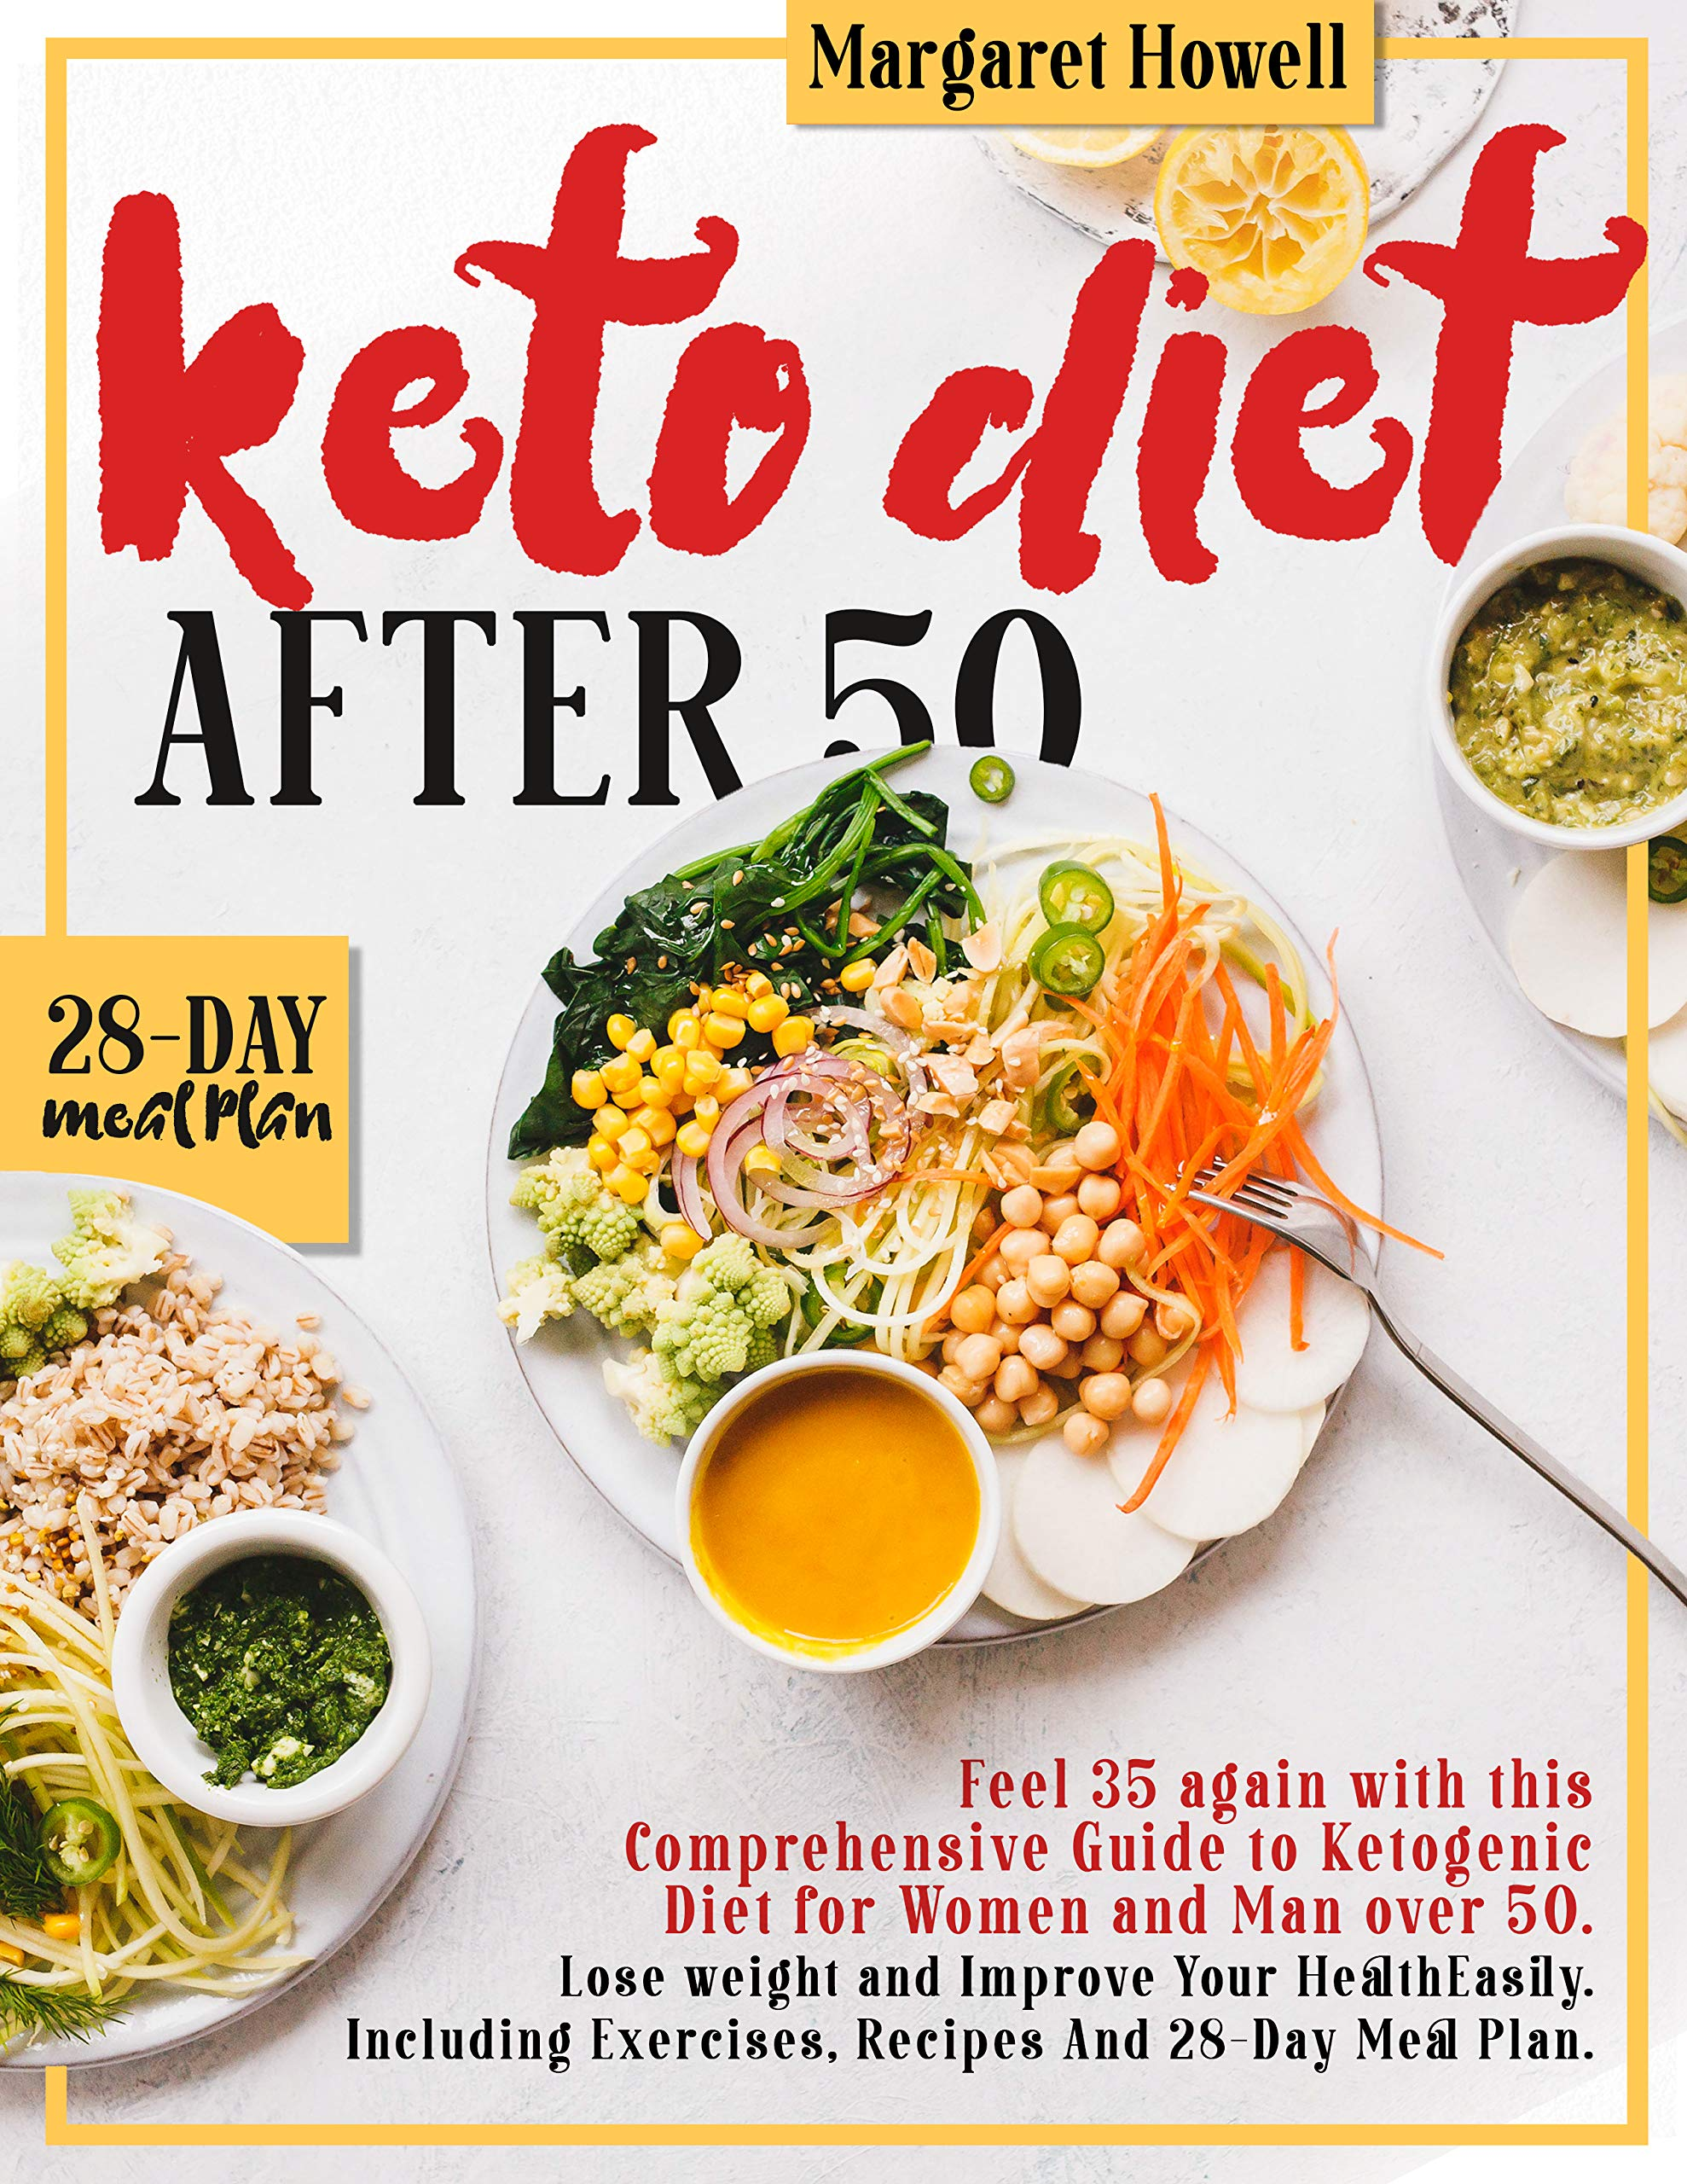 KETO DIET AFTER 50: Feel 35 again with this Comprehensive Guide to Ketogenic Diet for Women and Men Over 50.Lose weight and Improve Your Health Easily. Including Exercises, Recipes And a 28-Day Meal